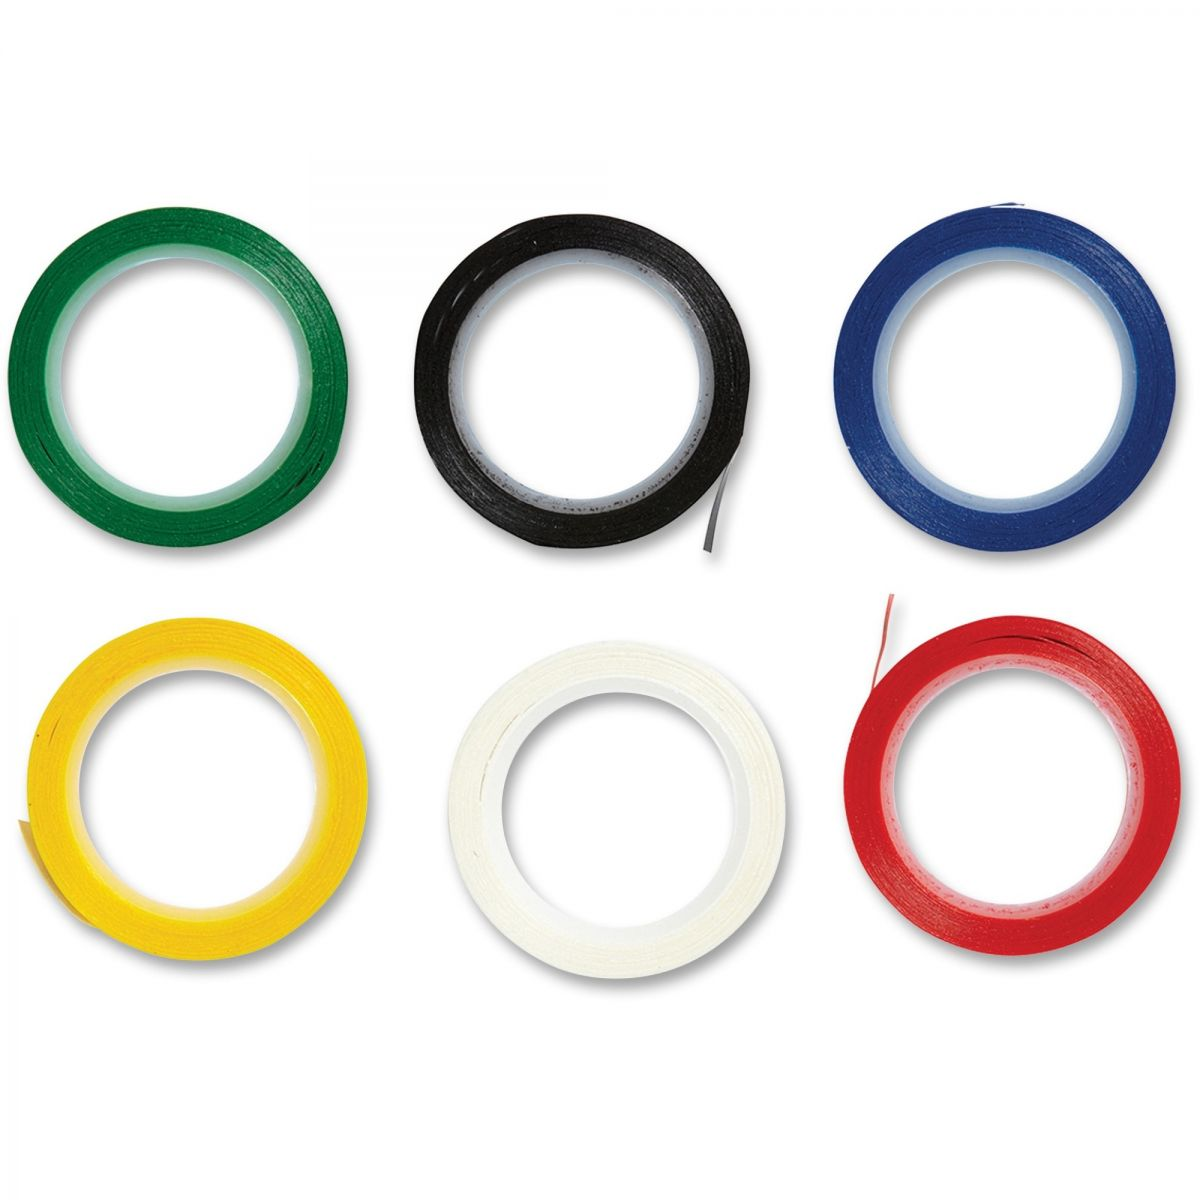 Industrial OPP Adhesive Tapes